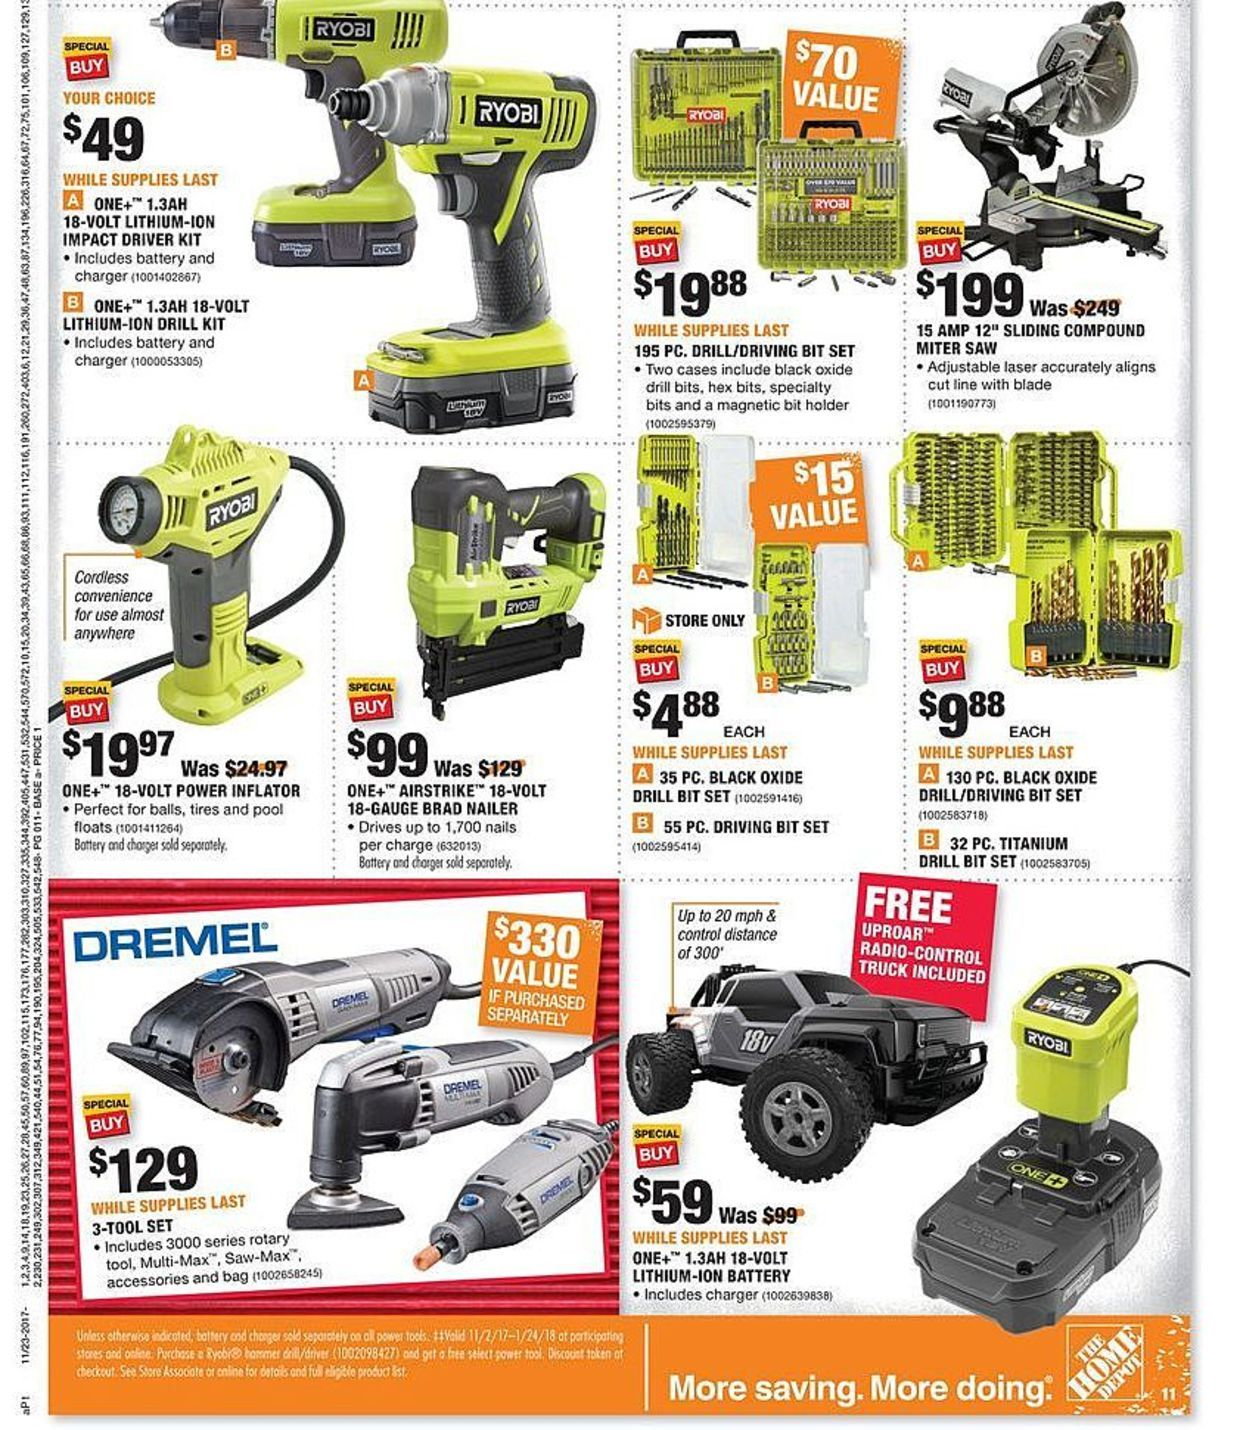 Home Depot Black Friday 2017 Ads And Deals As Usual Home Depot Is One Of The Best Black Friday Sales F Black Friday Home Depot Coupons Best Black Friday Sales